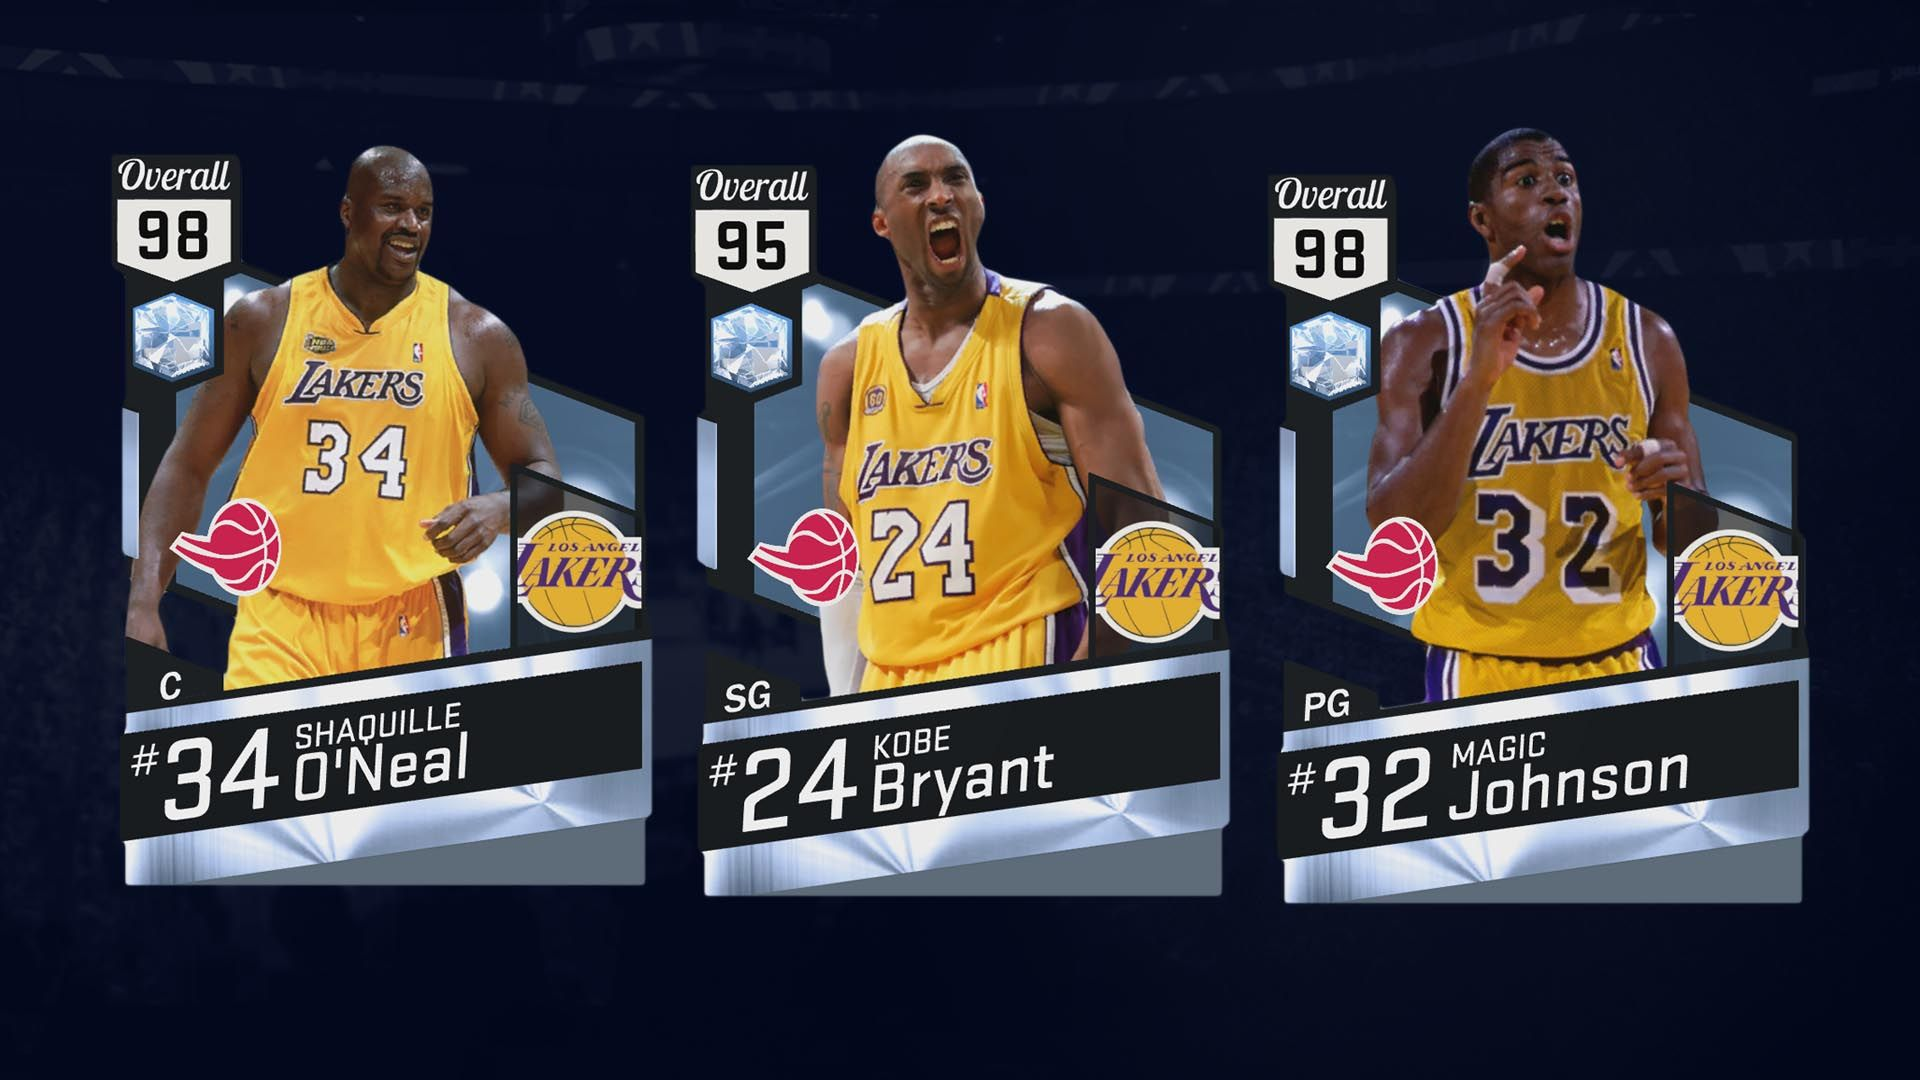 Playoff Performers Collection in NBA 2K17's MyTEAM